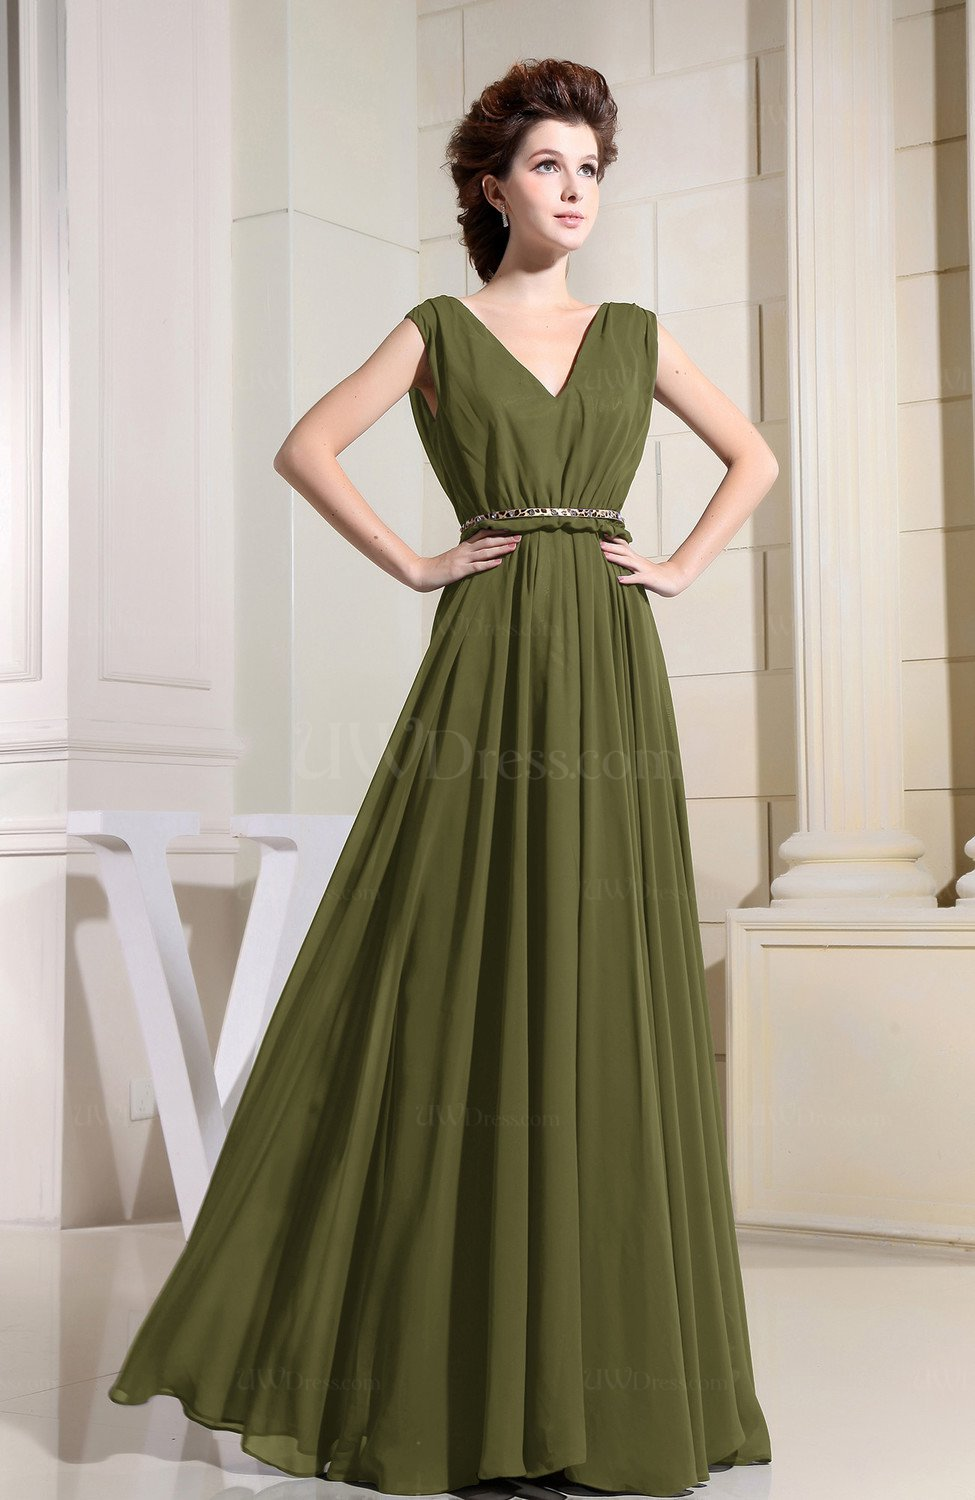 Olive Green Color Bridesmaid Dresses Vintage - UWDress.com